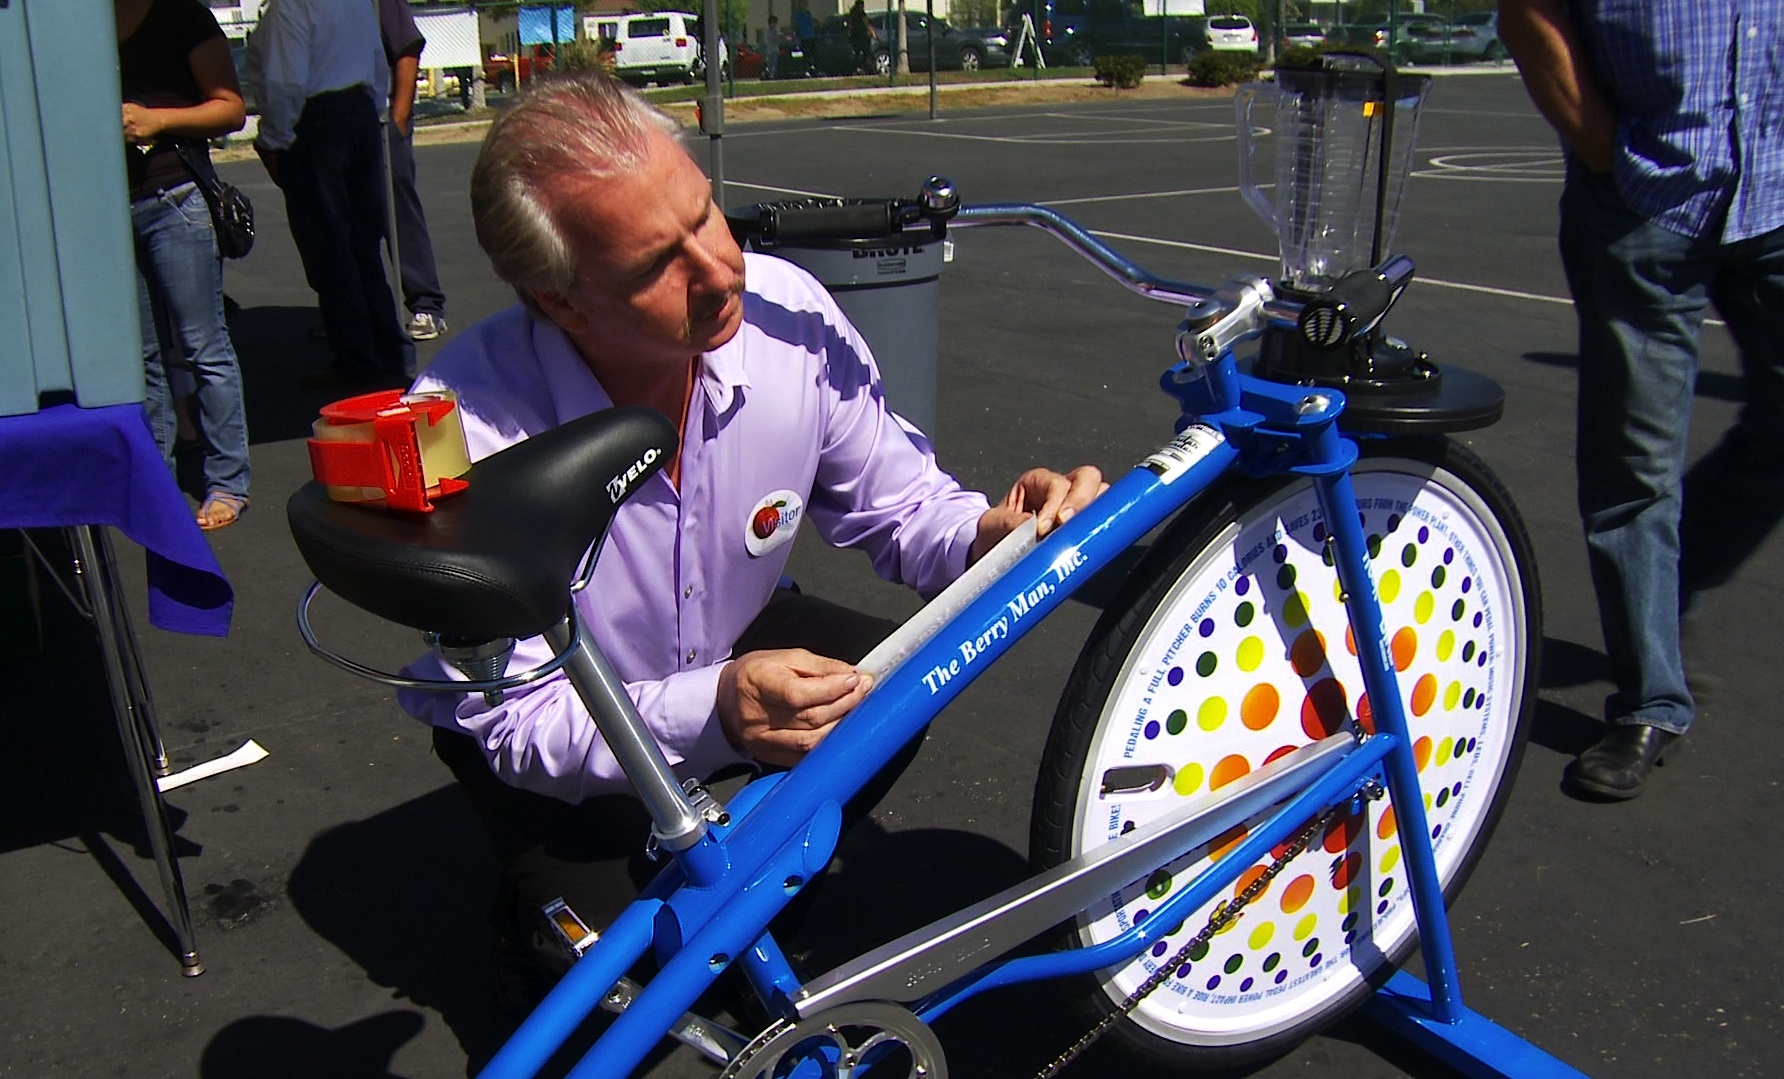 805 Productions presents: The Berry Man, Inc. serving the community. Make delicious organic fruit smoothies with The Berry Man, Inc. Blender Bike! At Sheridan Way Elementary School, Ventura, CA.